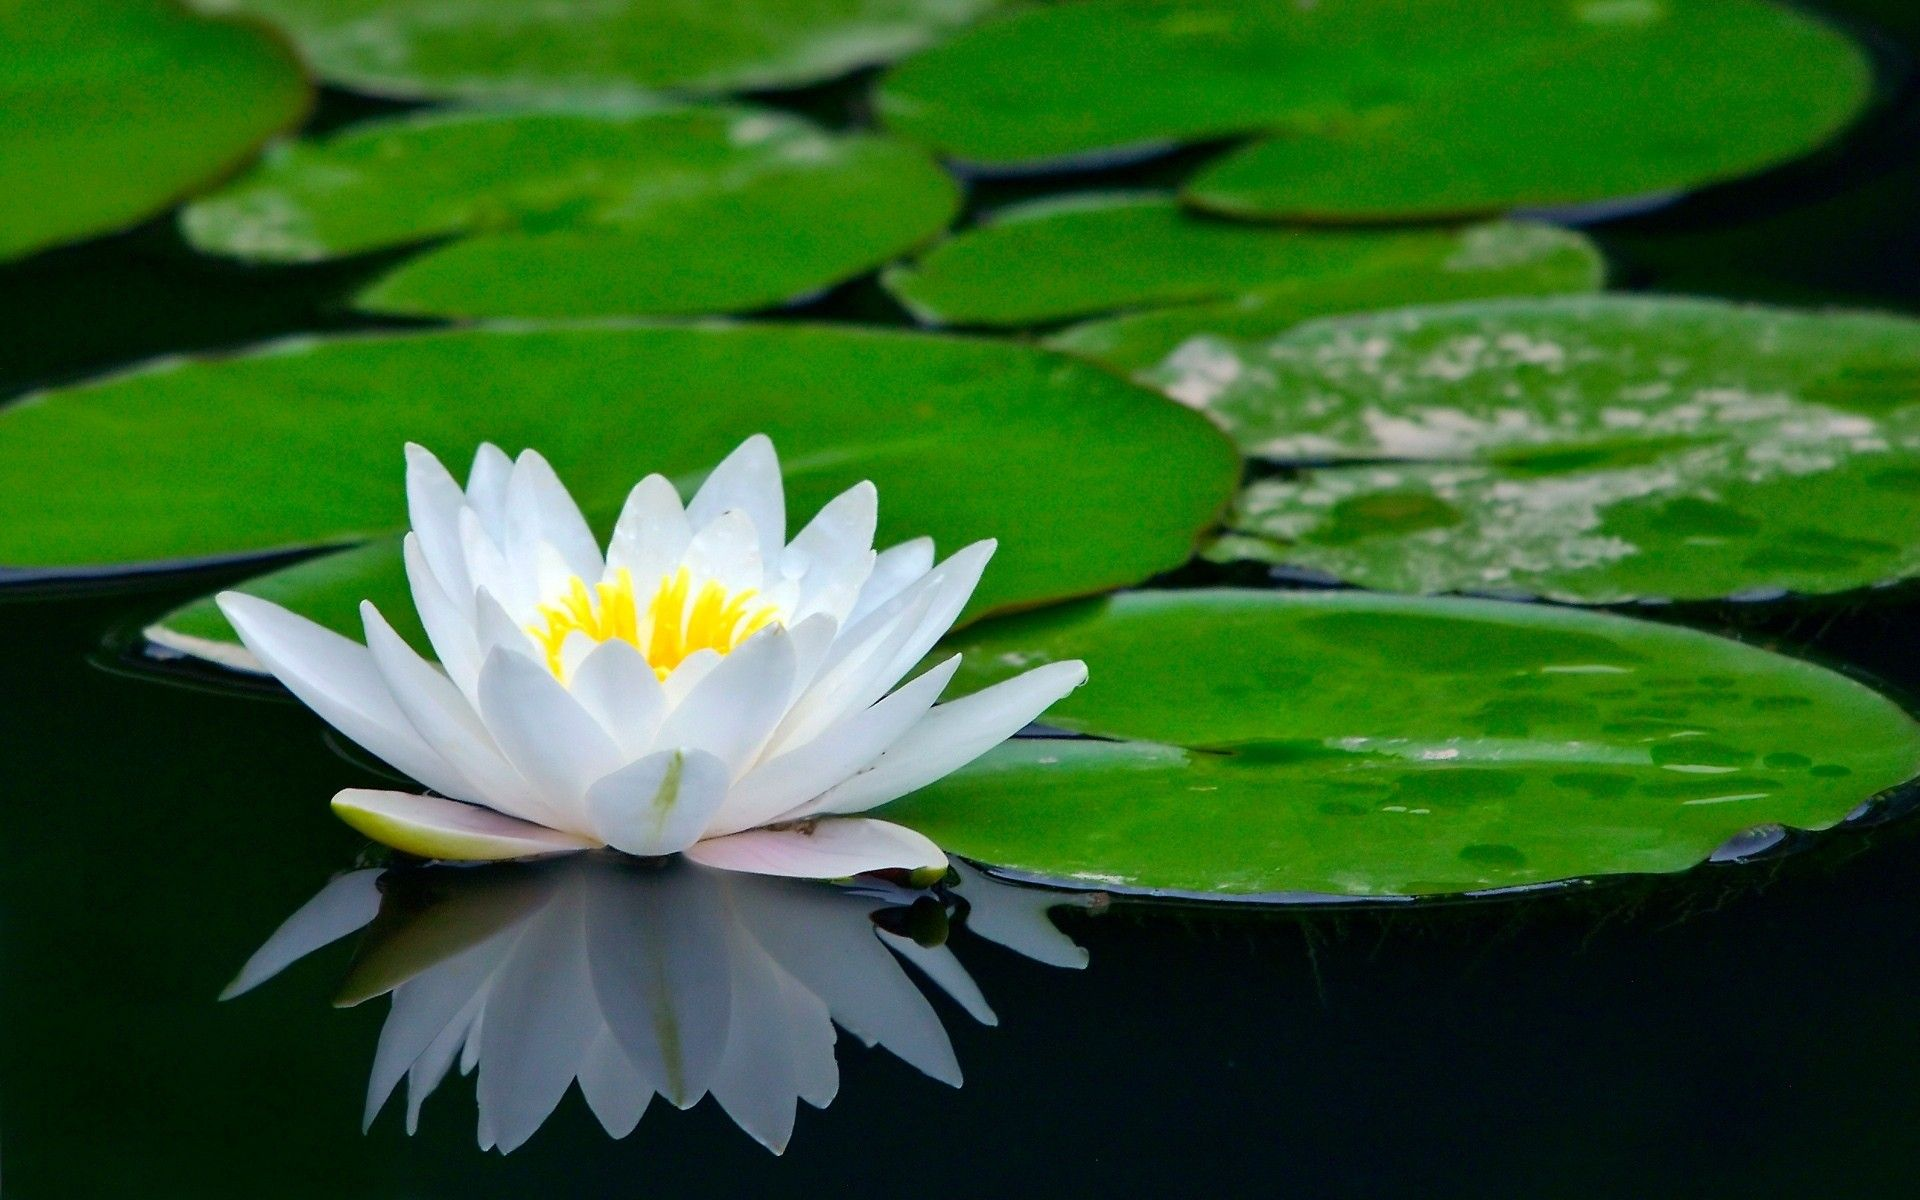 Why peace and nonviolence do not equal weakness lotus flower white lotus flower wallpaper free garden drawing radiohead illustration wallpaper archived at flower wallpaper izmirmasajfo Choice Image